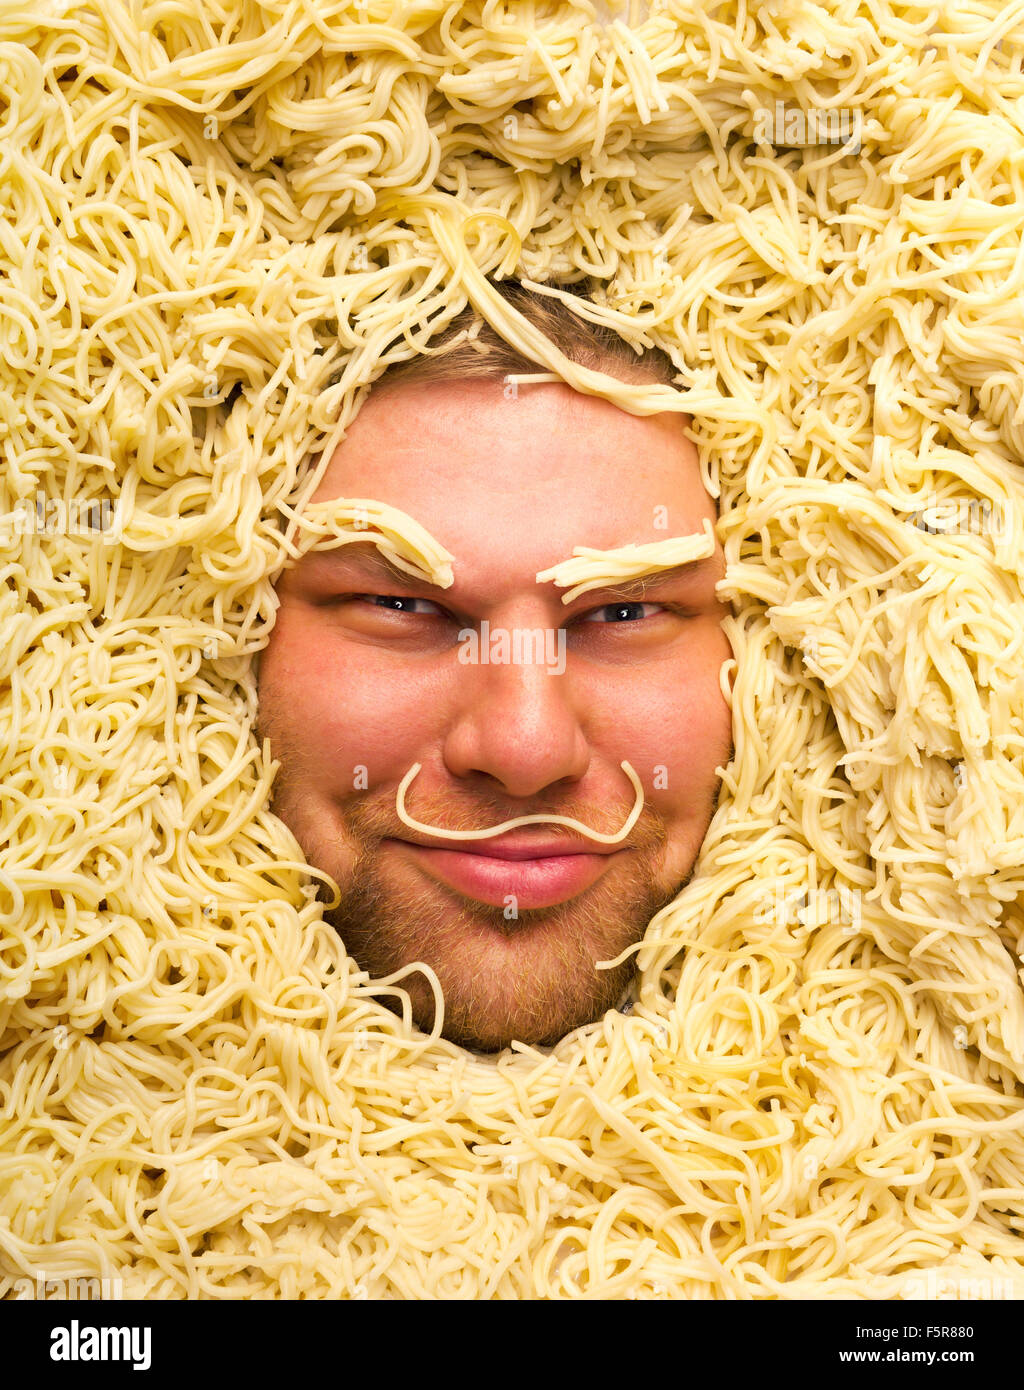 Happy man's face in pasta, closeup - Stock Image